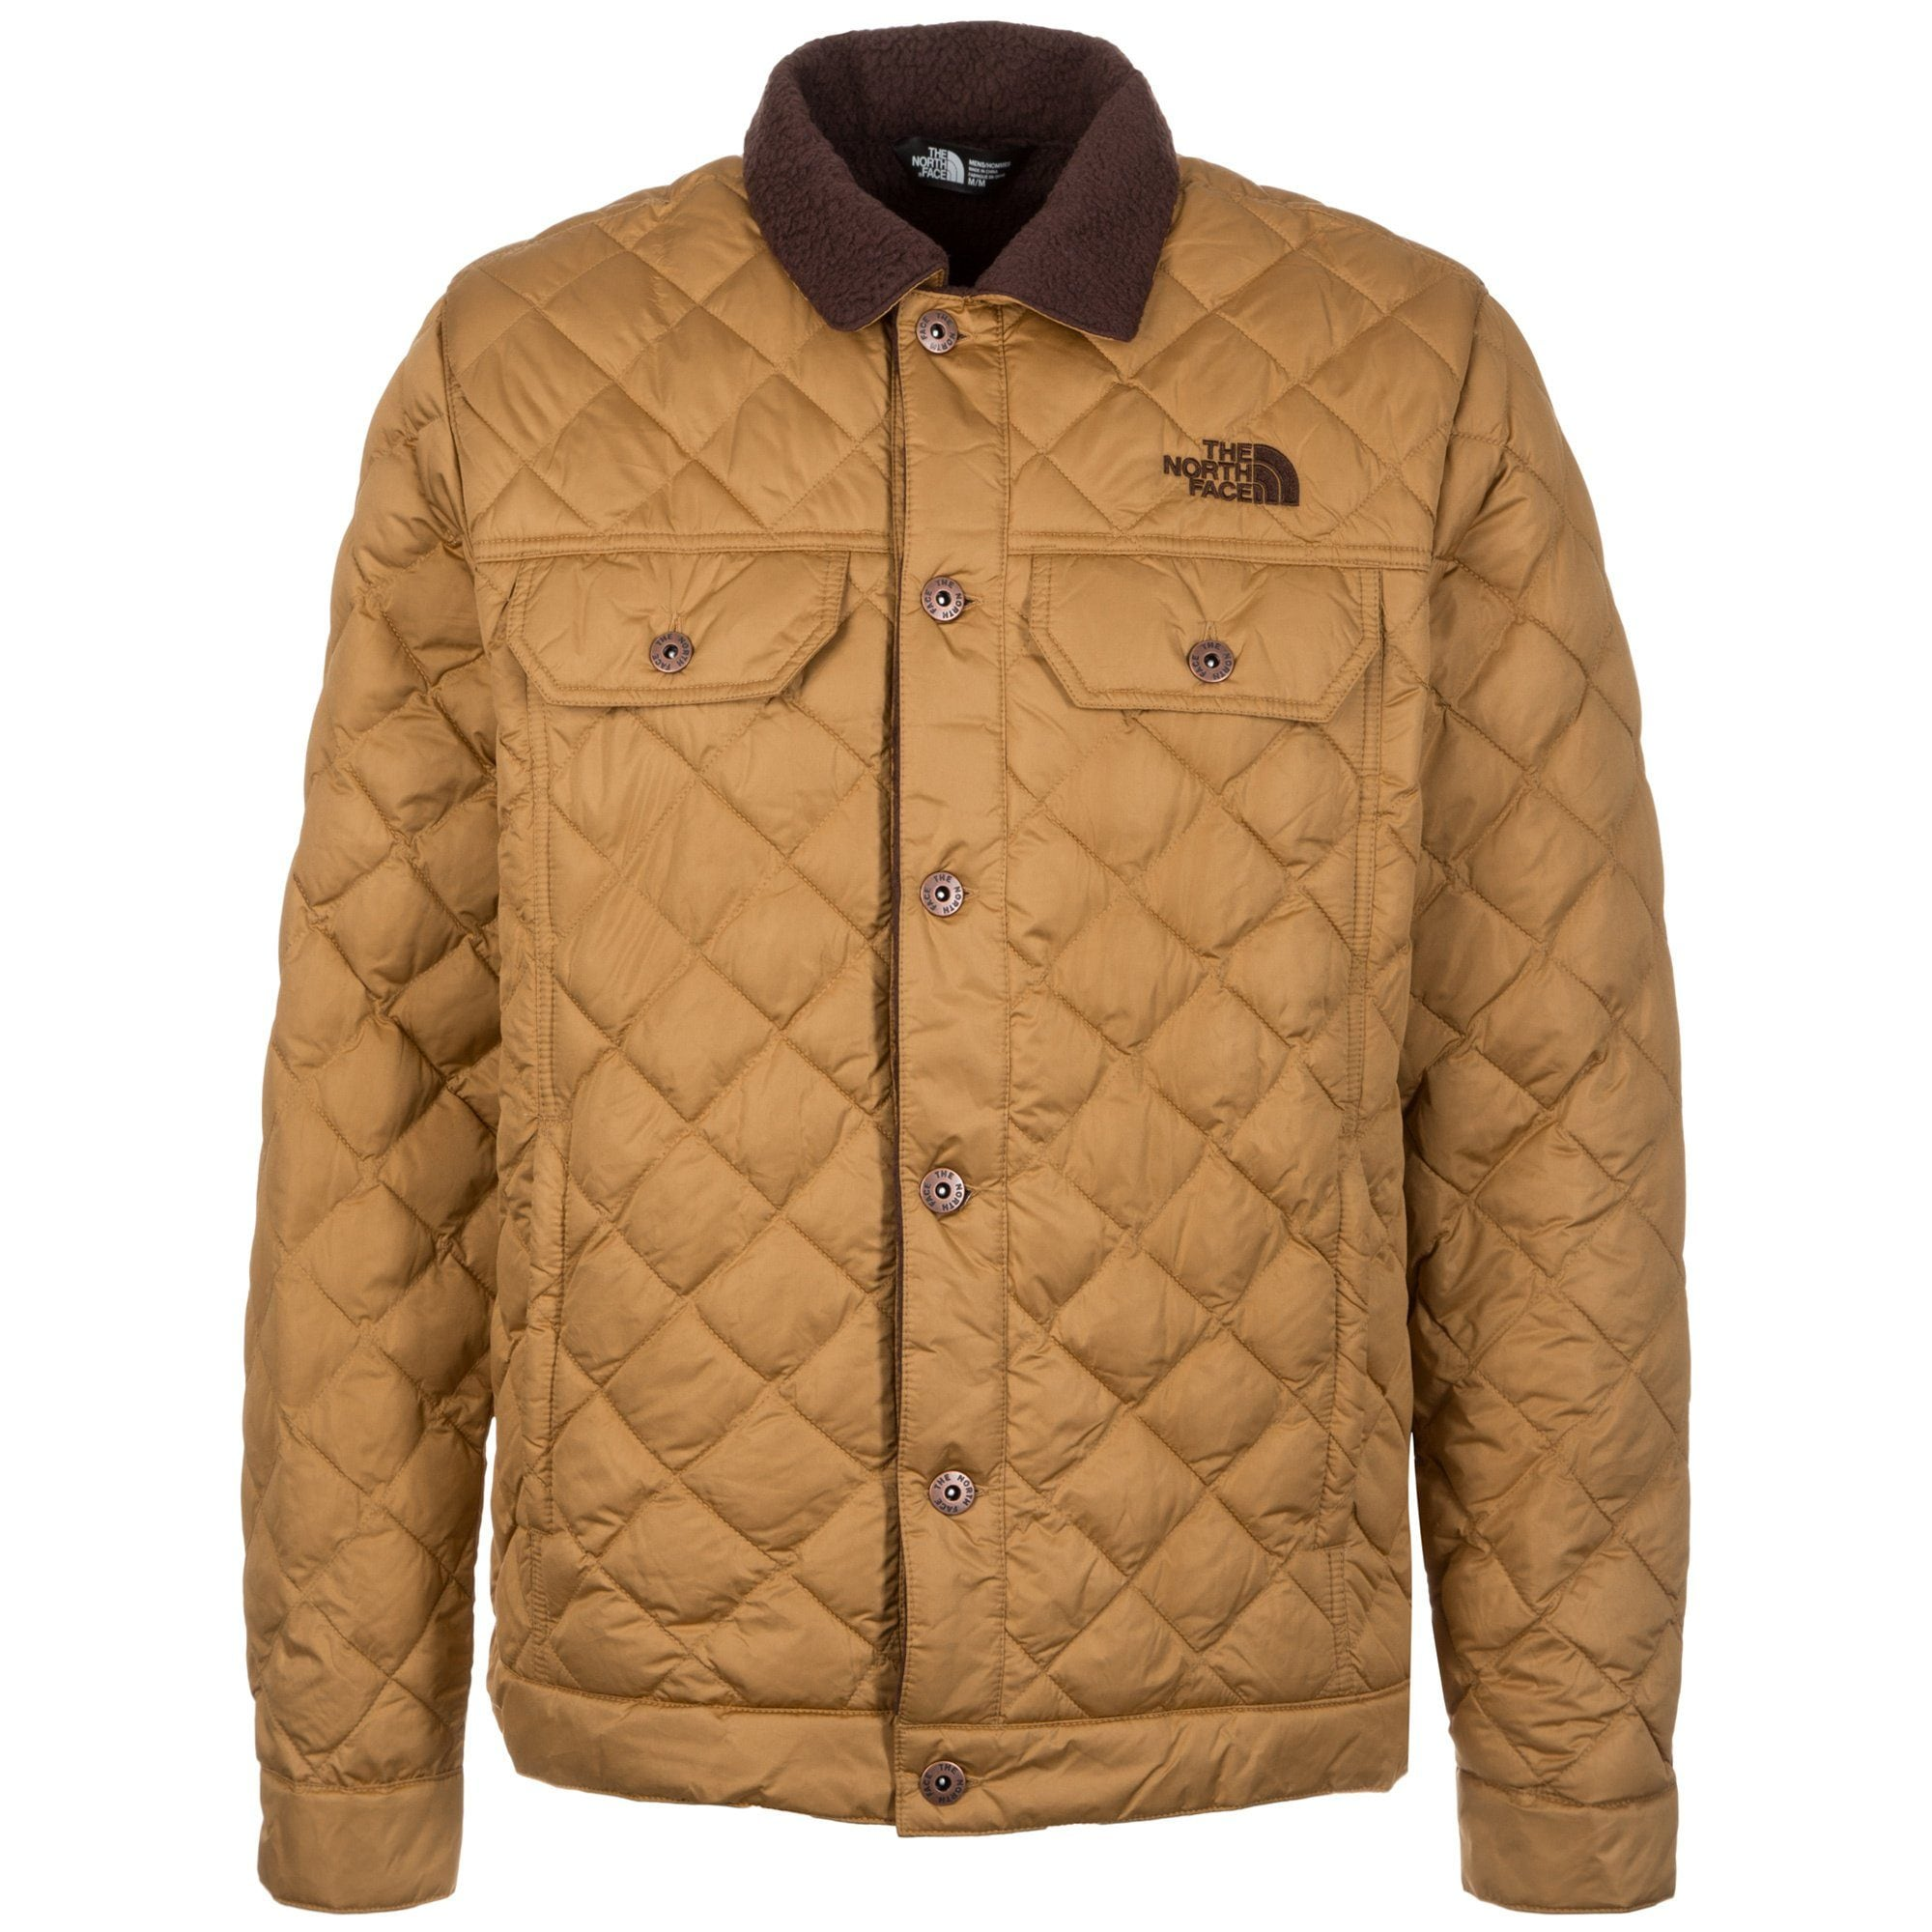 THE NORTH FACE Sherpa Thermoball Jacke Herren bestellen » BAUR